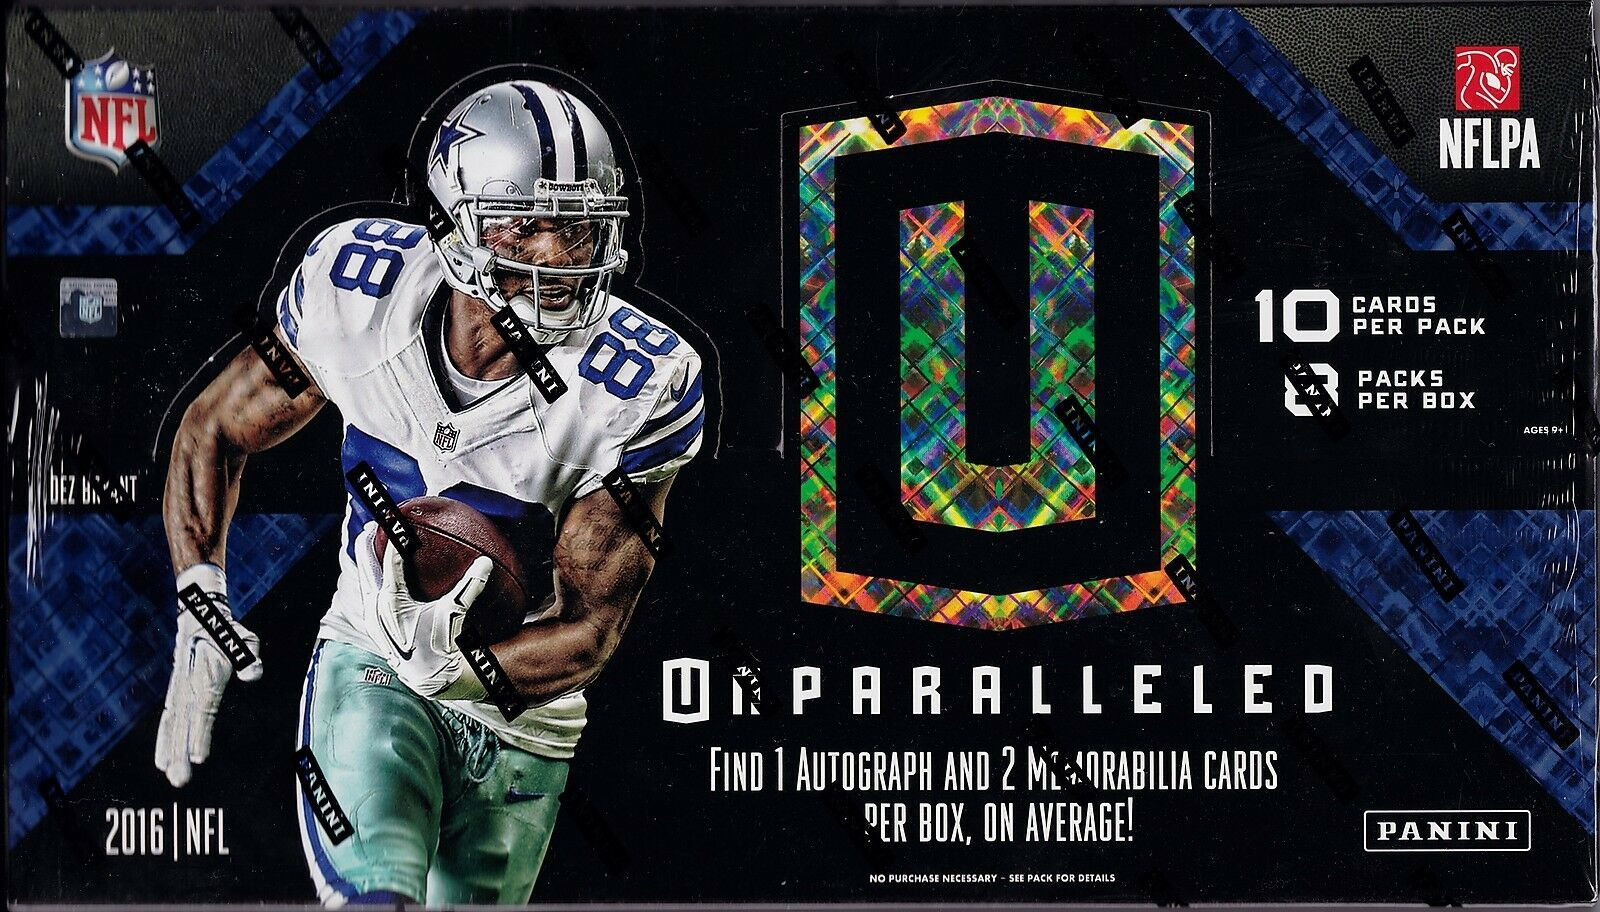 2016 Panini Unparalleled Football sealed hobby box 8 packs of 10 cards 1 auto